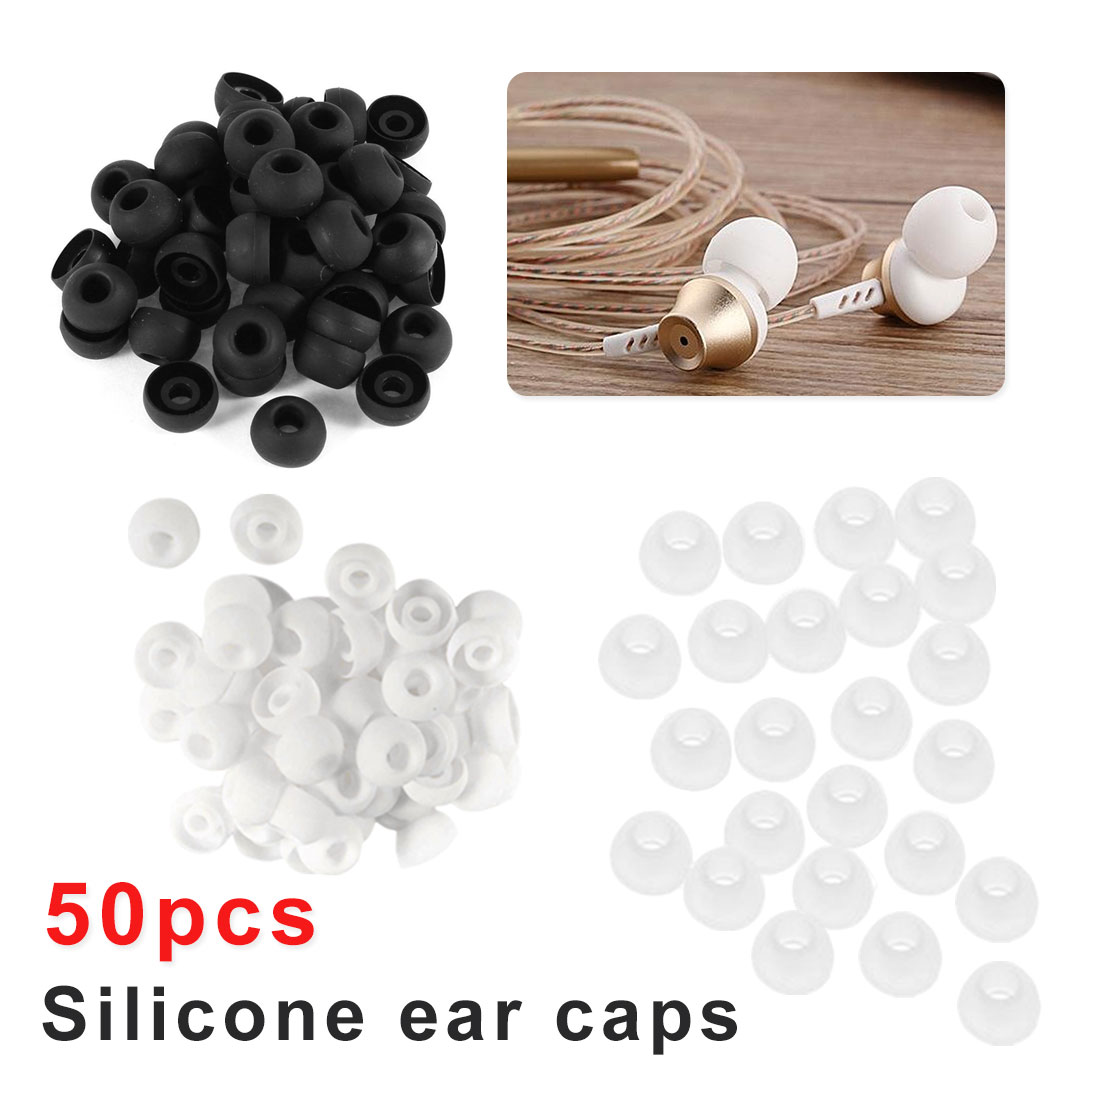 Accessories Telephone 50pcs/lot Soft Silicon Ear Tip Cover Replacement Earbud Covers For In-Ear Headphones Earphones